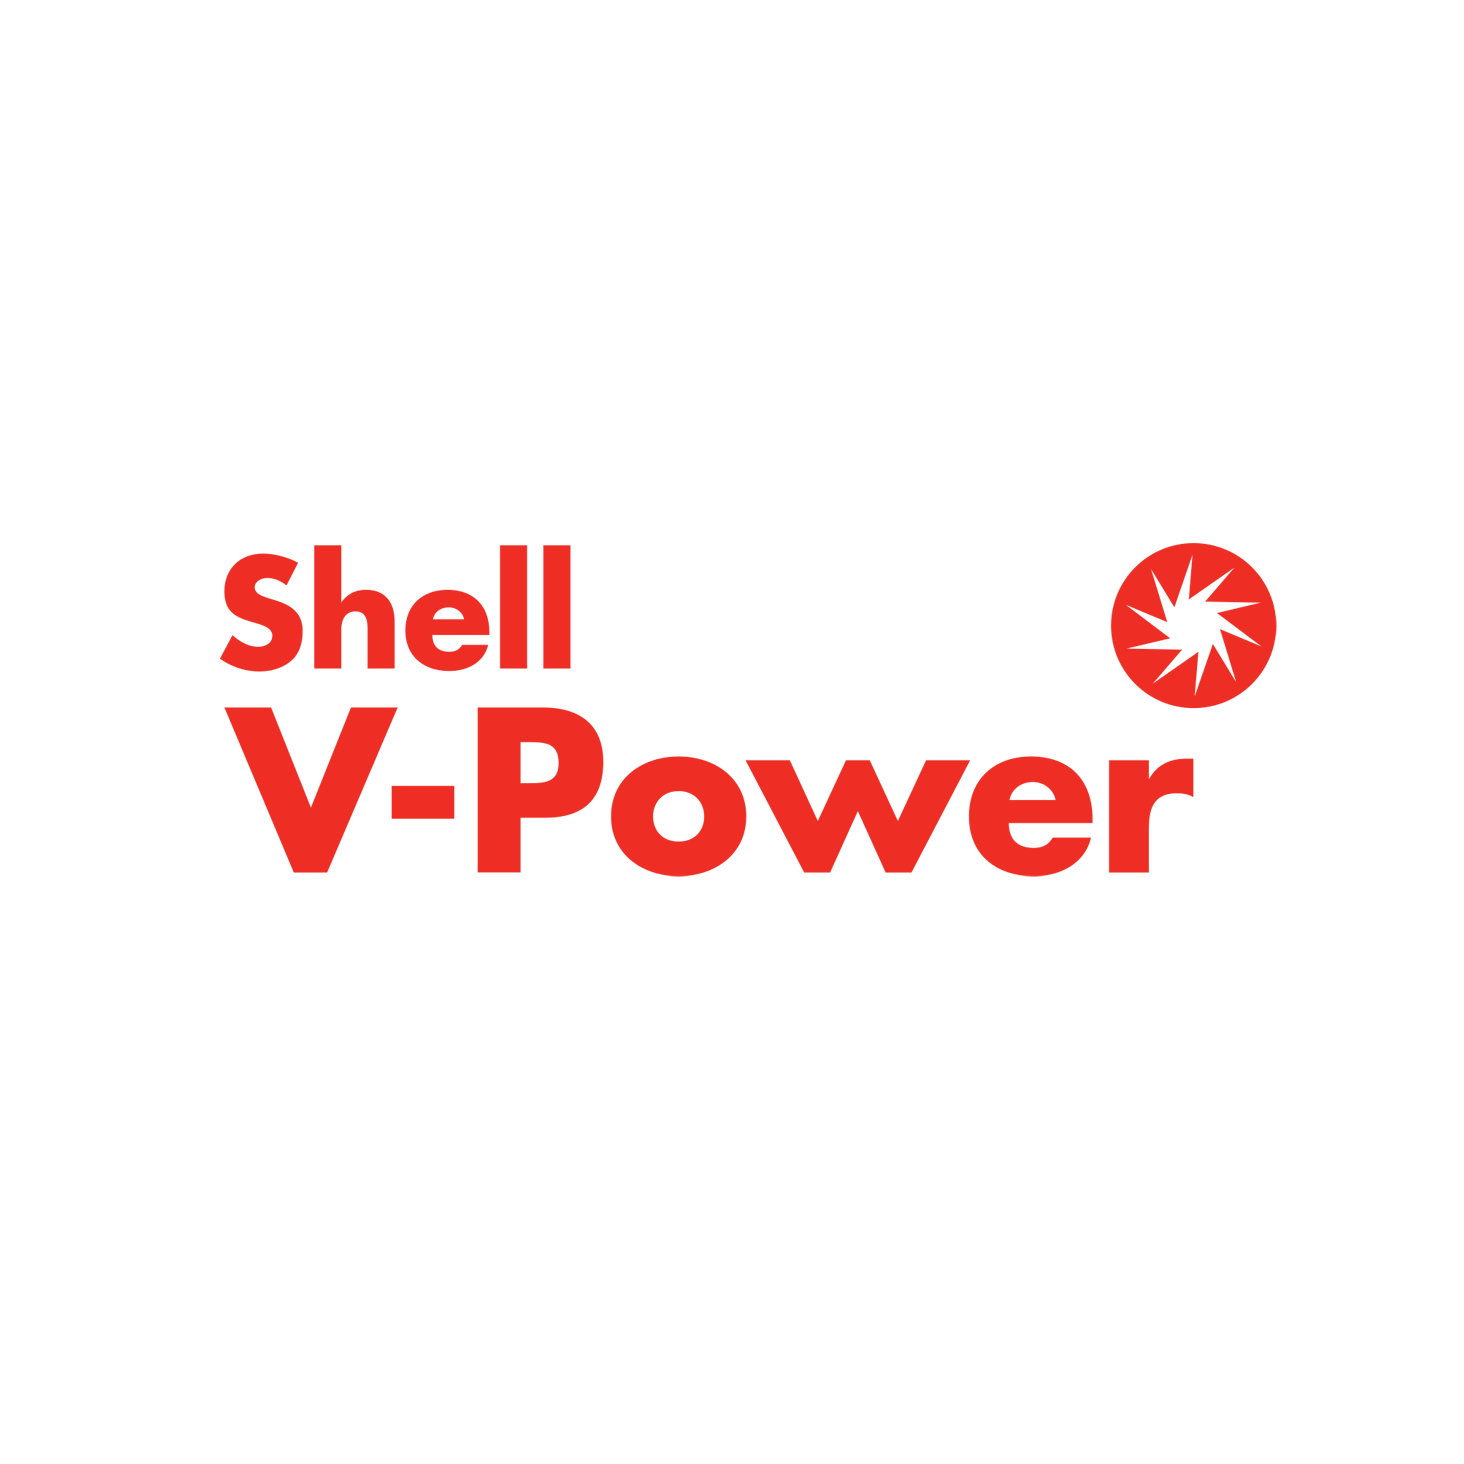 Shell V-Power contains: